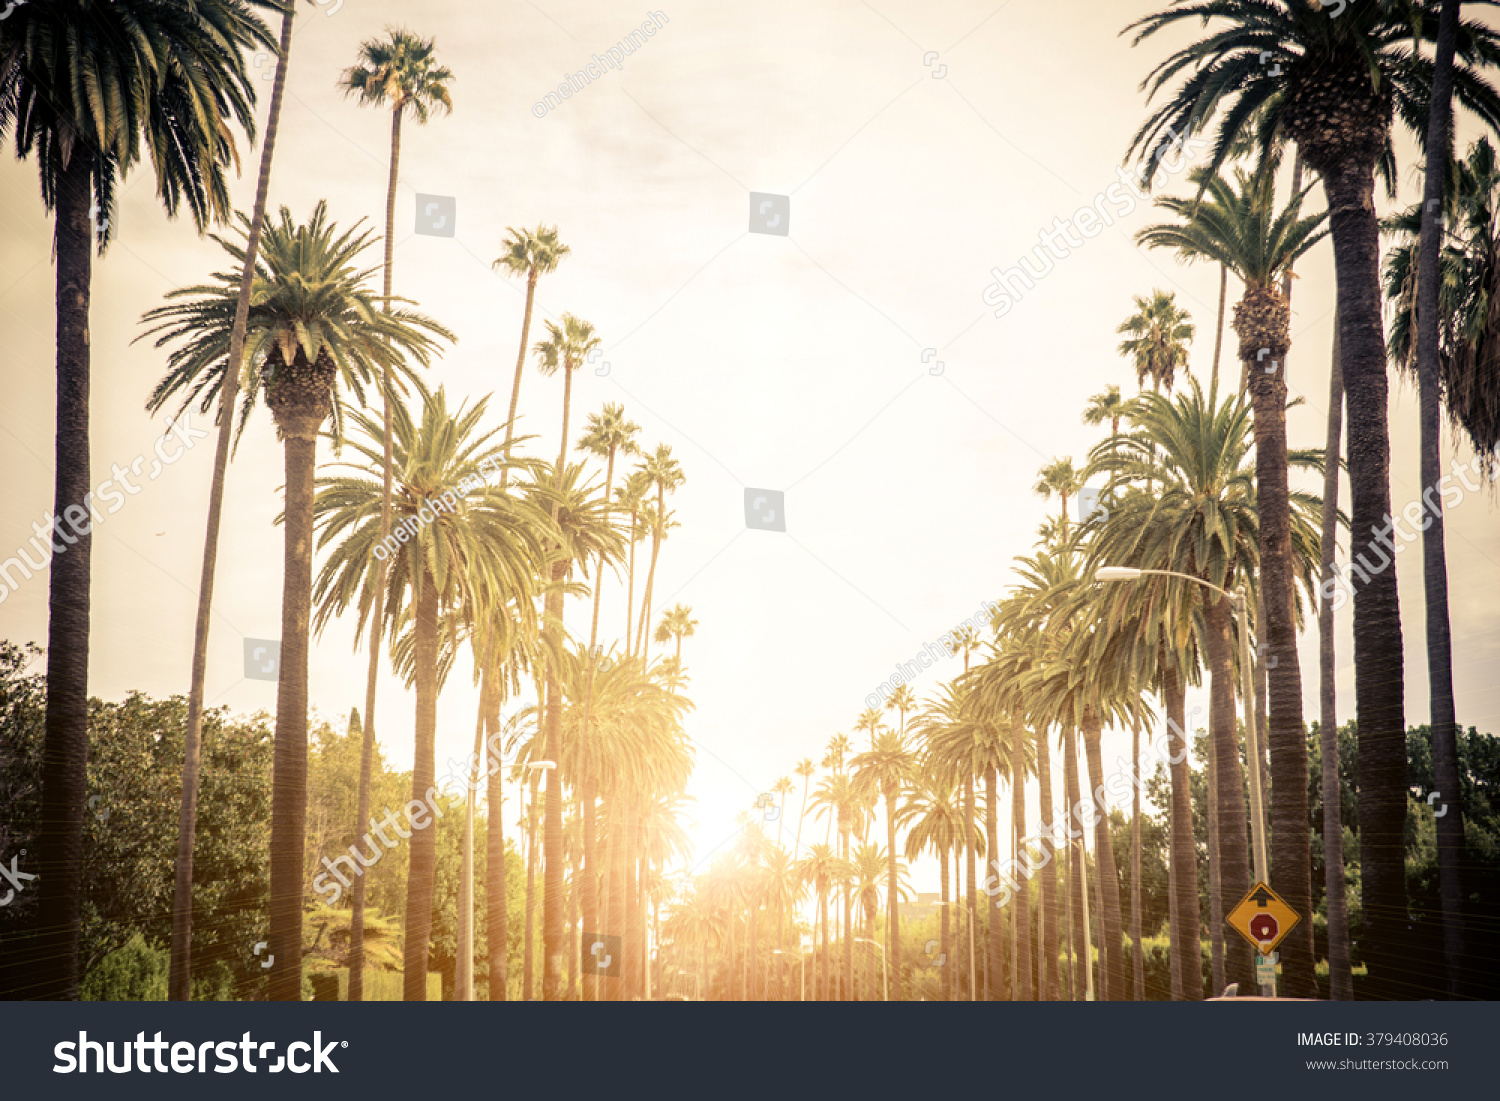 Beverly Hills street with palm trees at sunset, Los Angeles #379408036